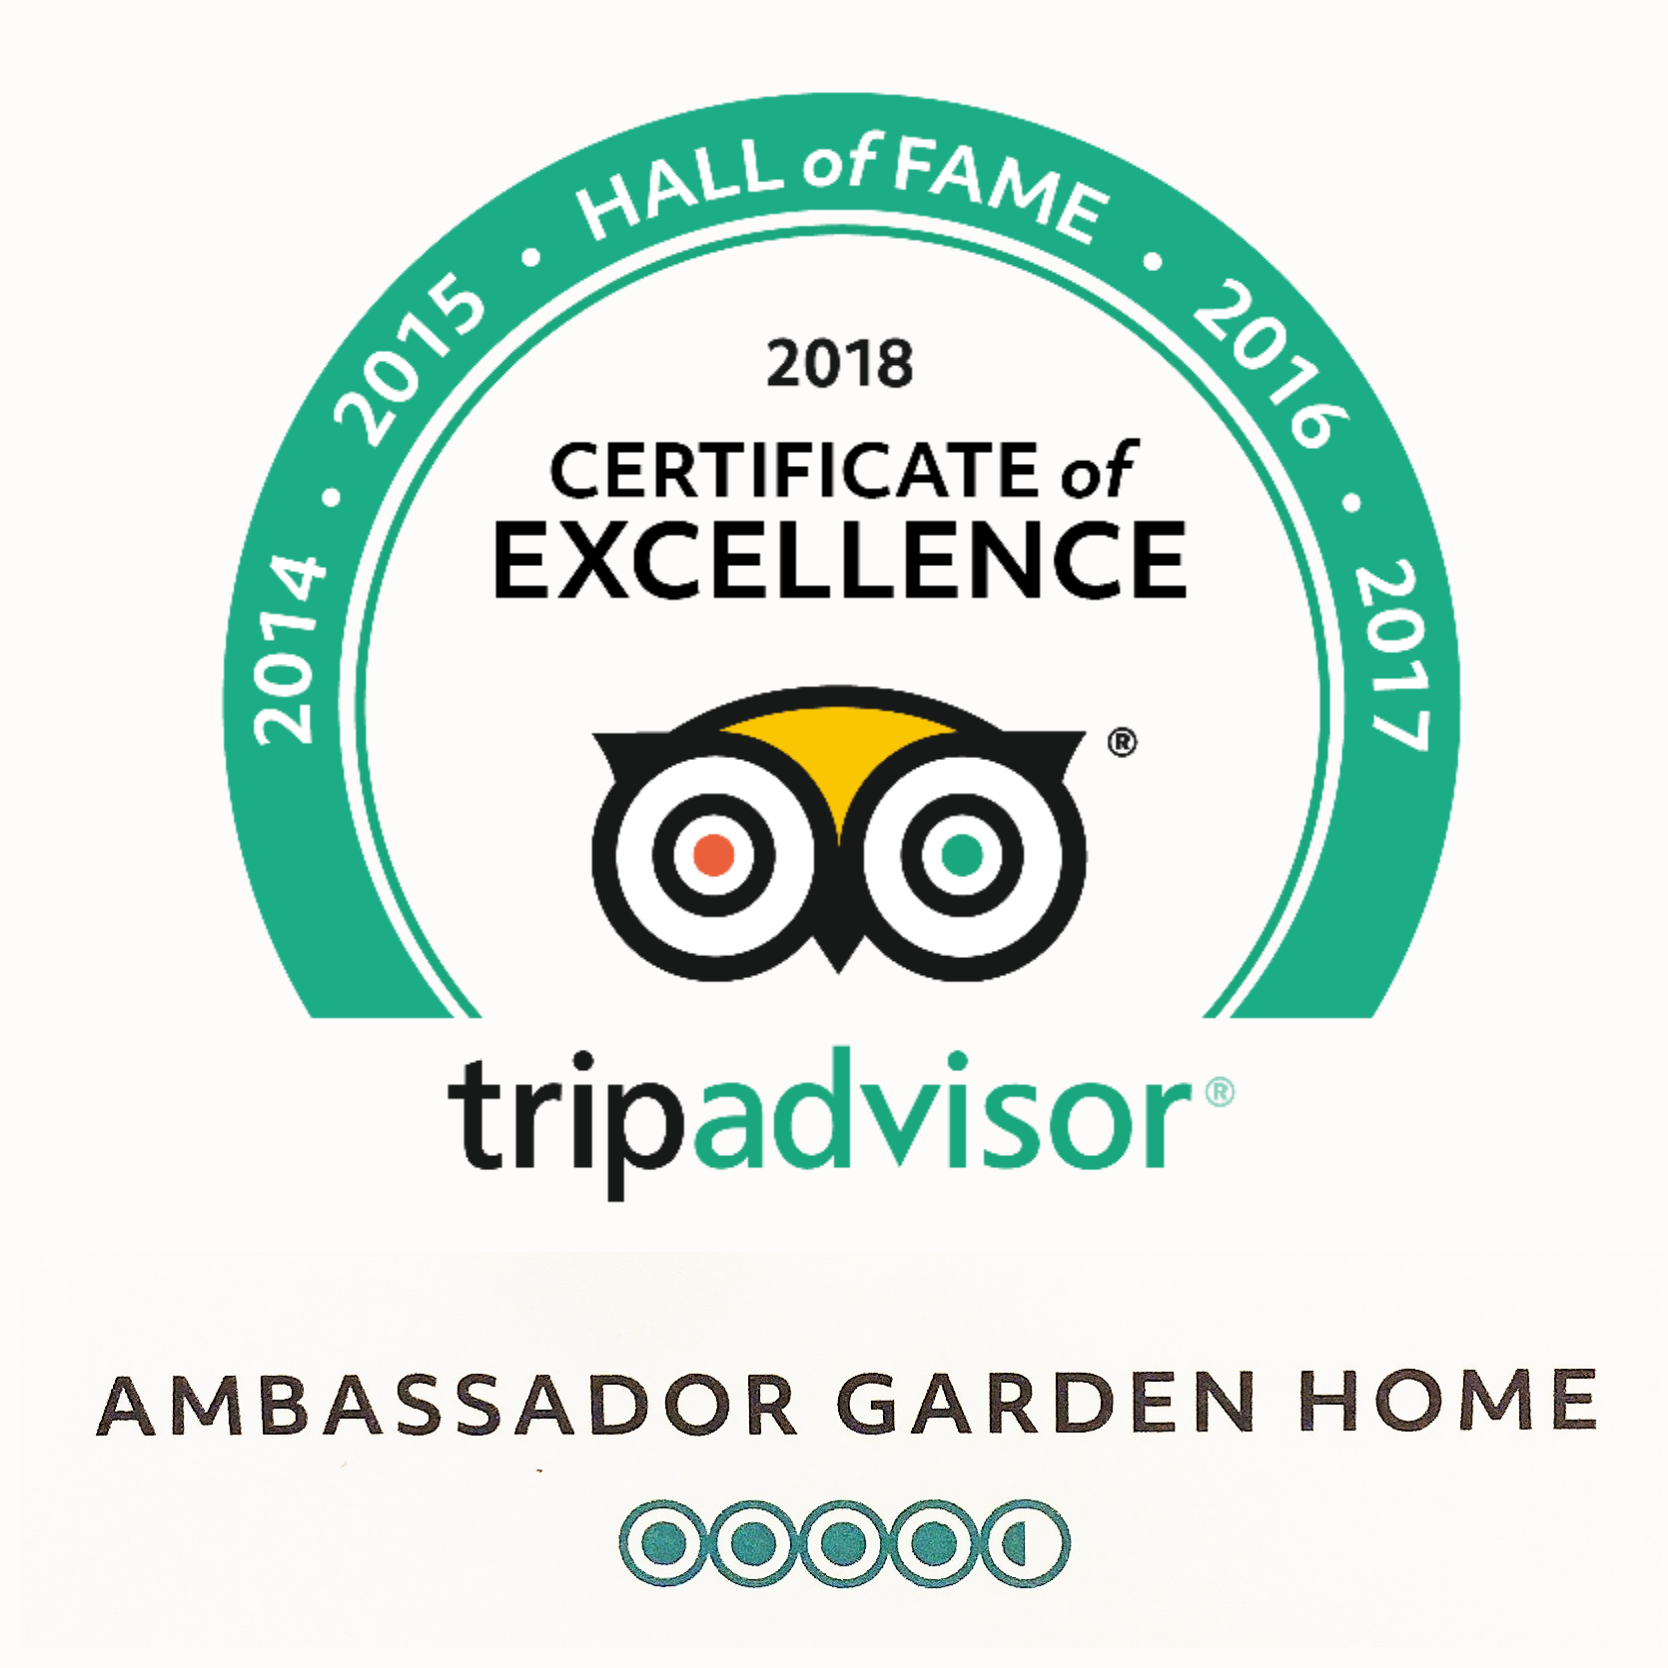 Ambassador Garden Home has been Awarded byTripadvisor in Nepal for 2010 to 2018 the symbol of excellence in hospitality for 8 consecutive years.